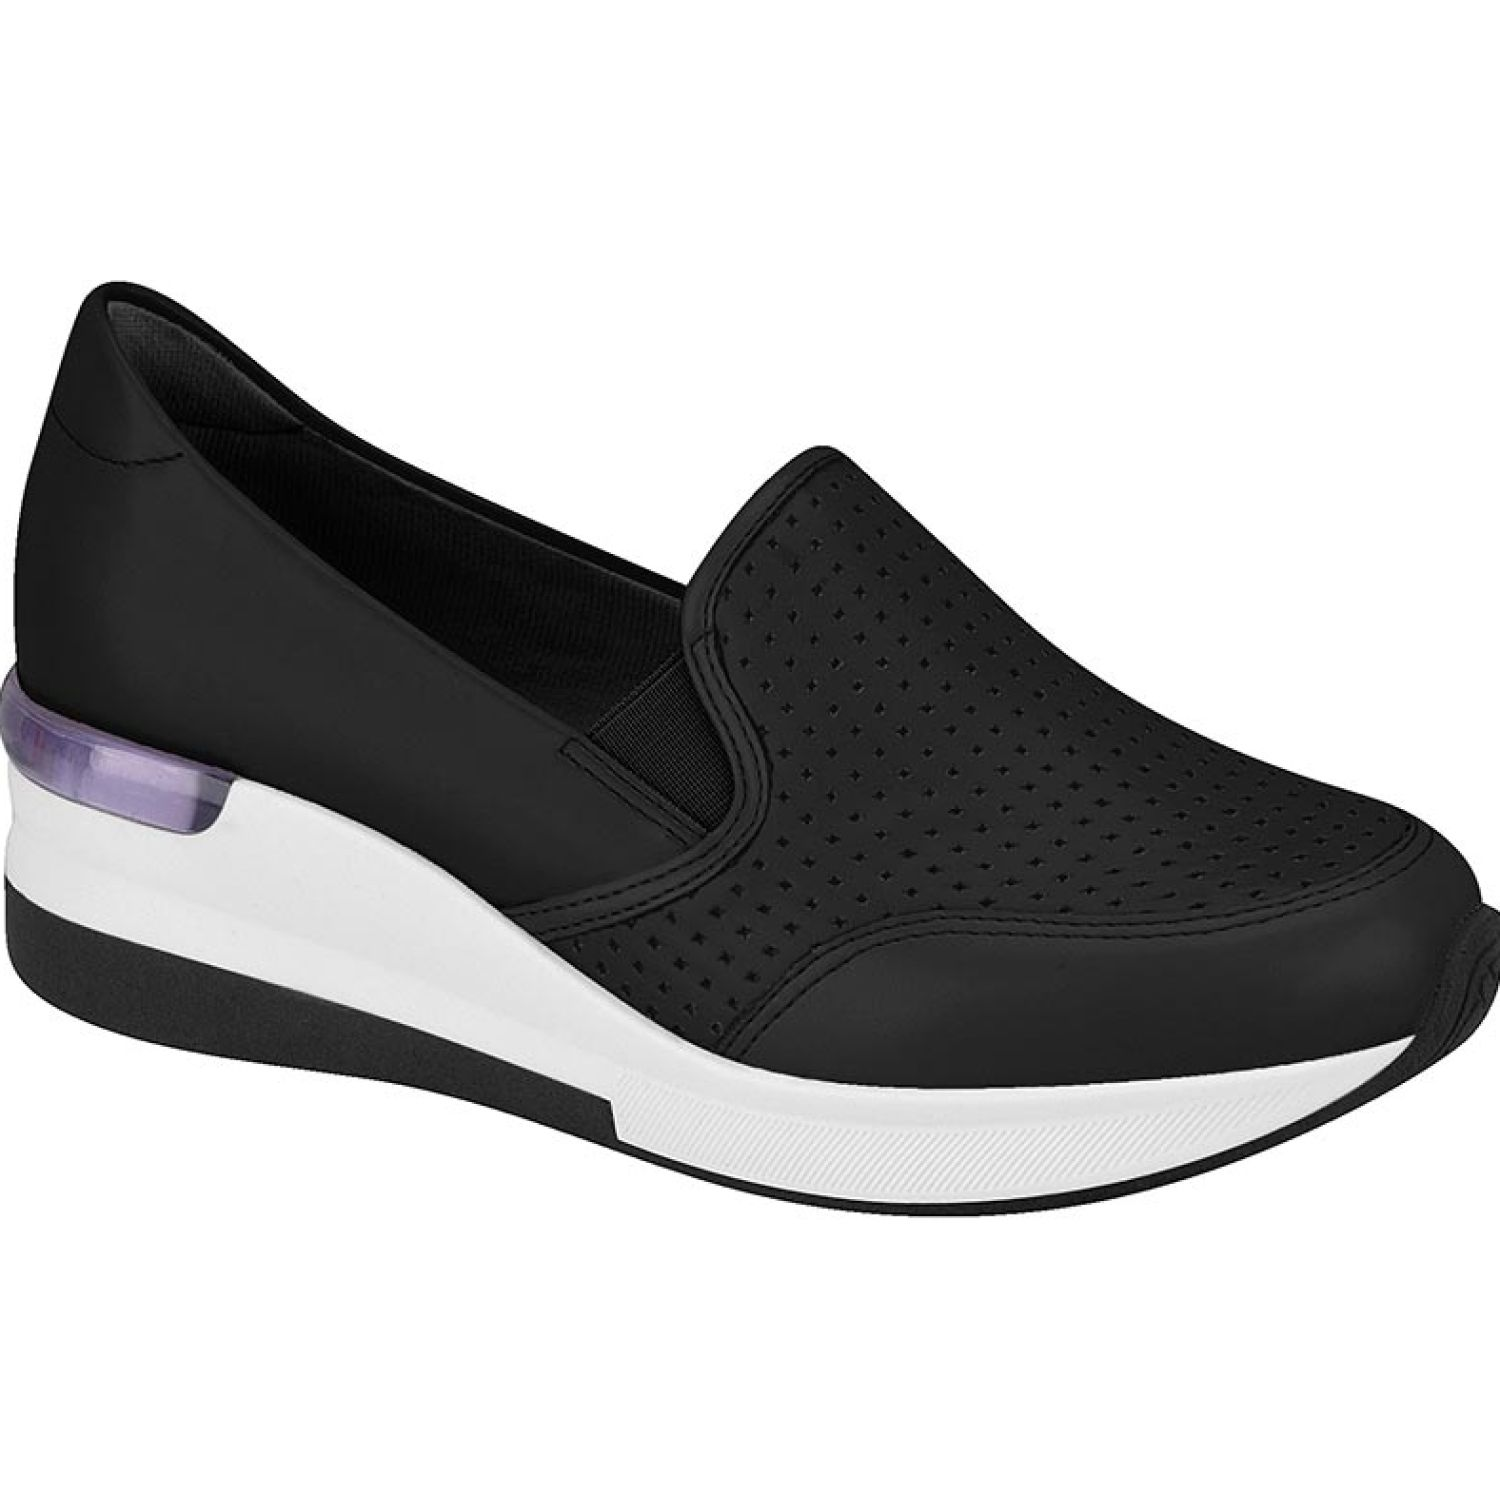 MODARE 7336.118.20471-15745 Negro Zapatillas Fashion